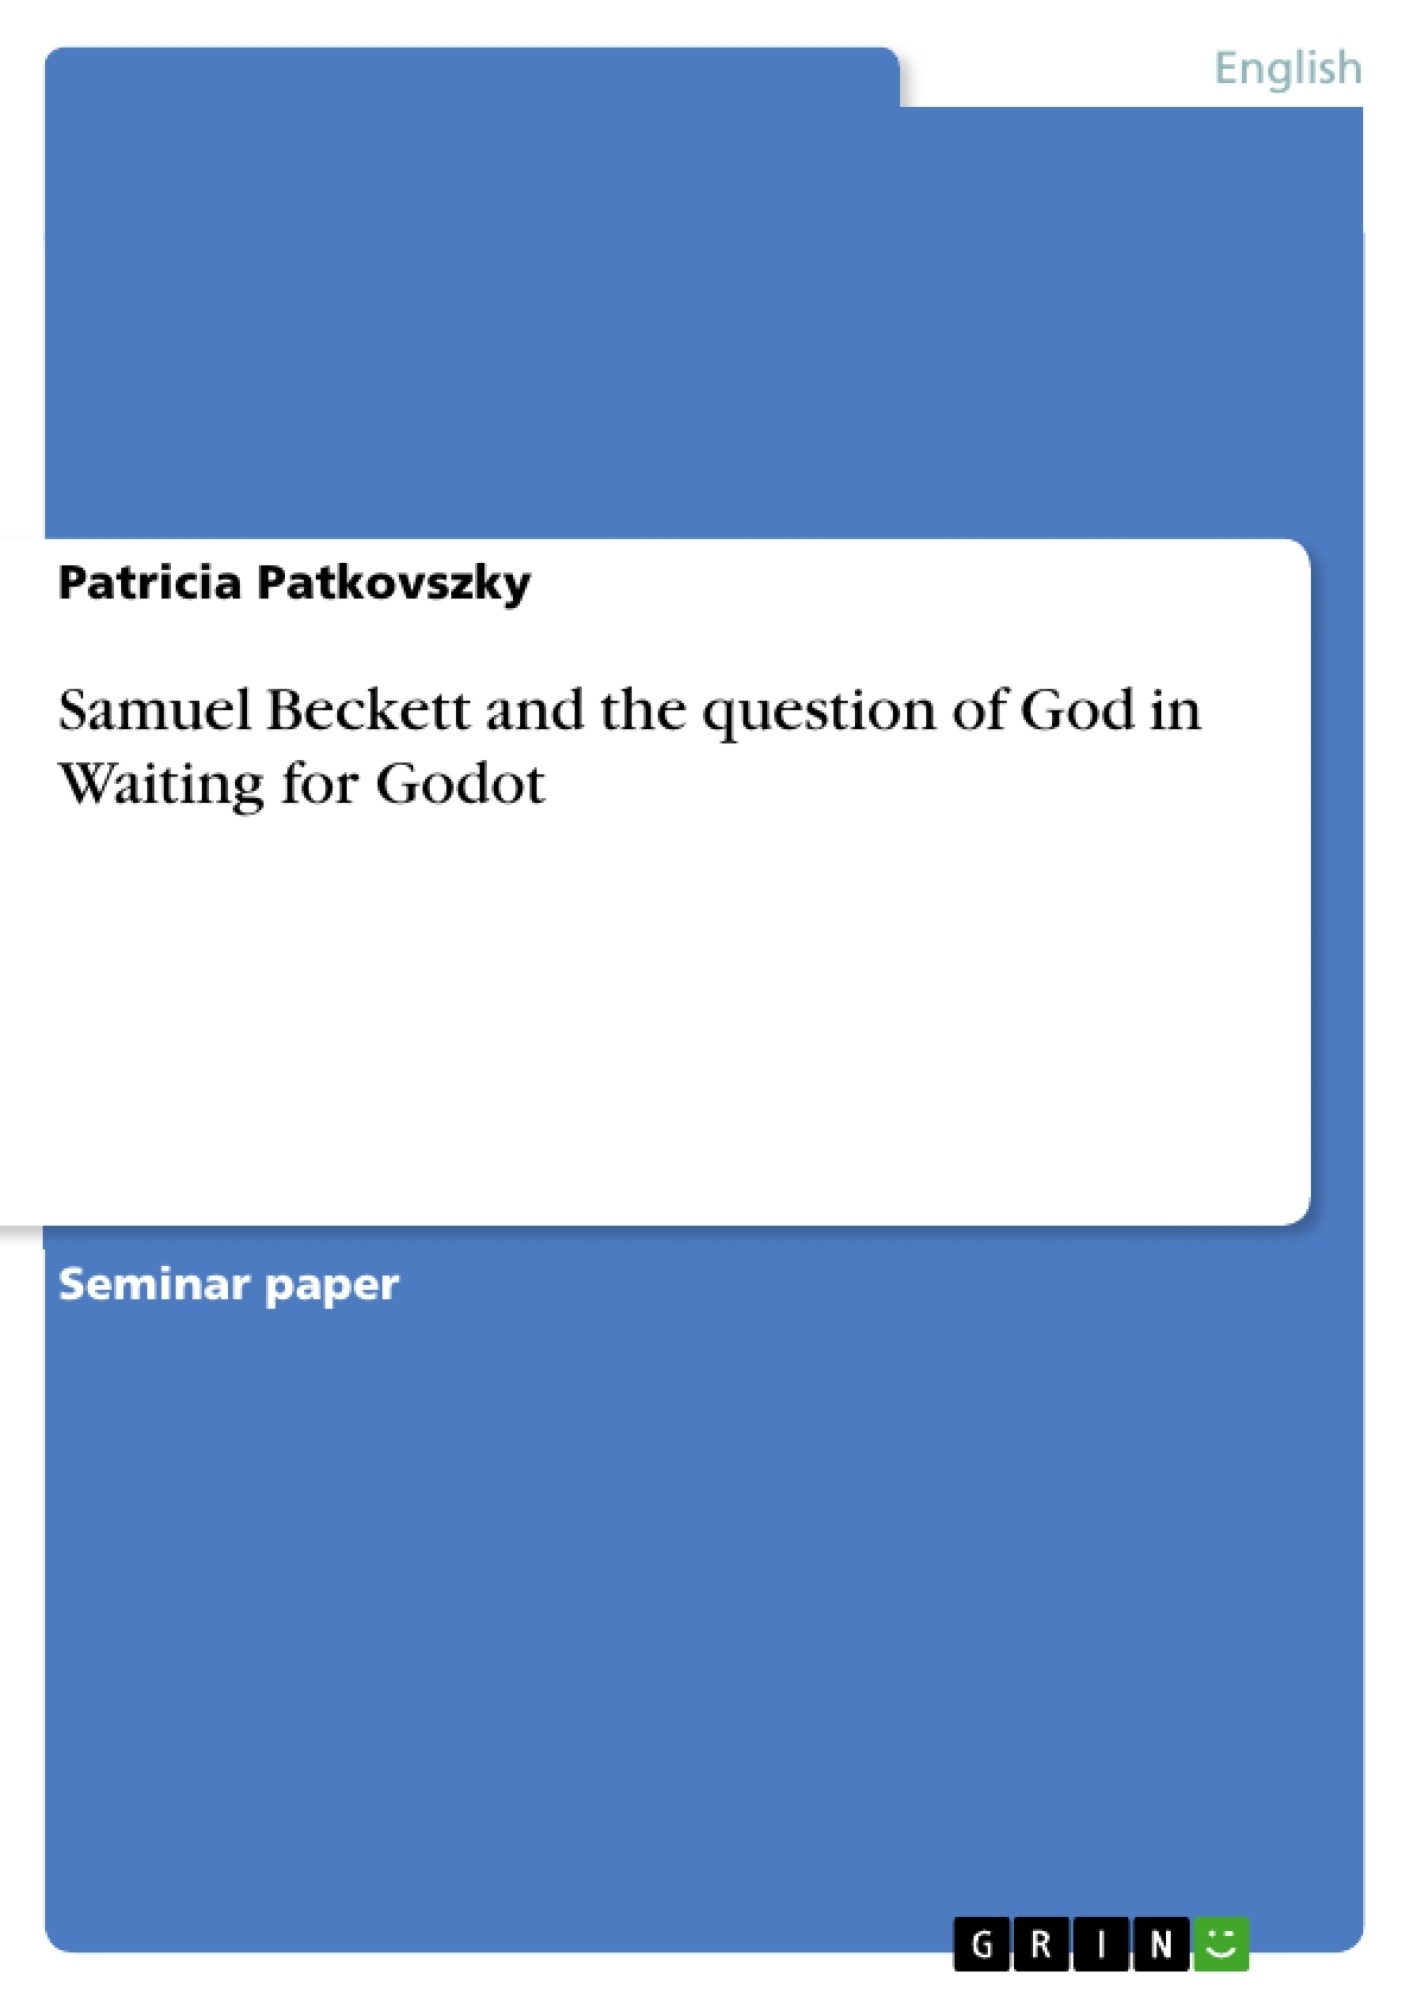 Title: Samuel Beckett and the question of God in Waiting for Godot